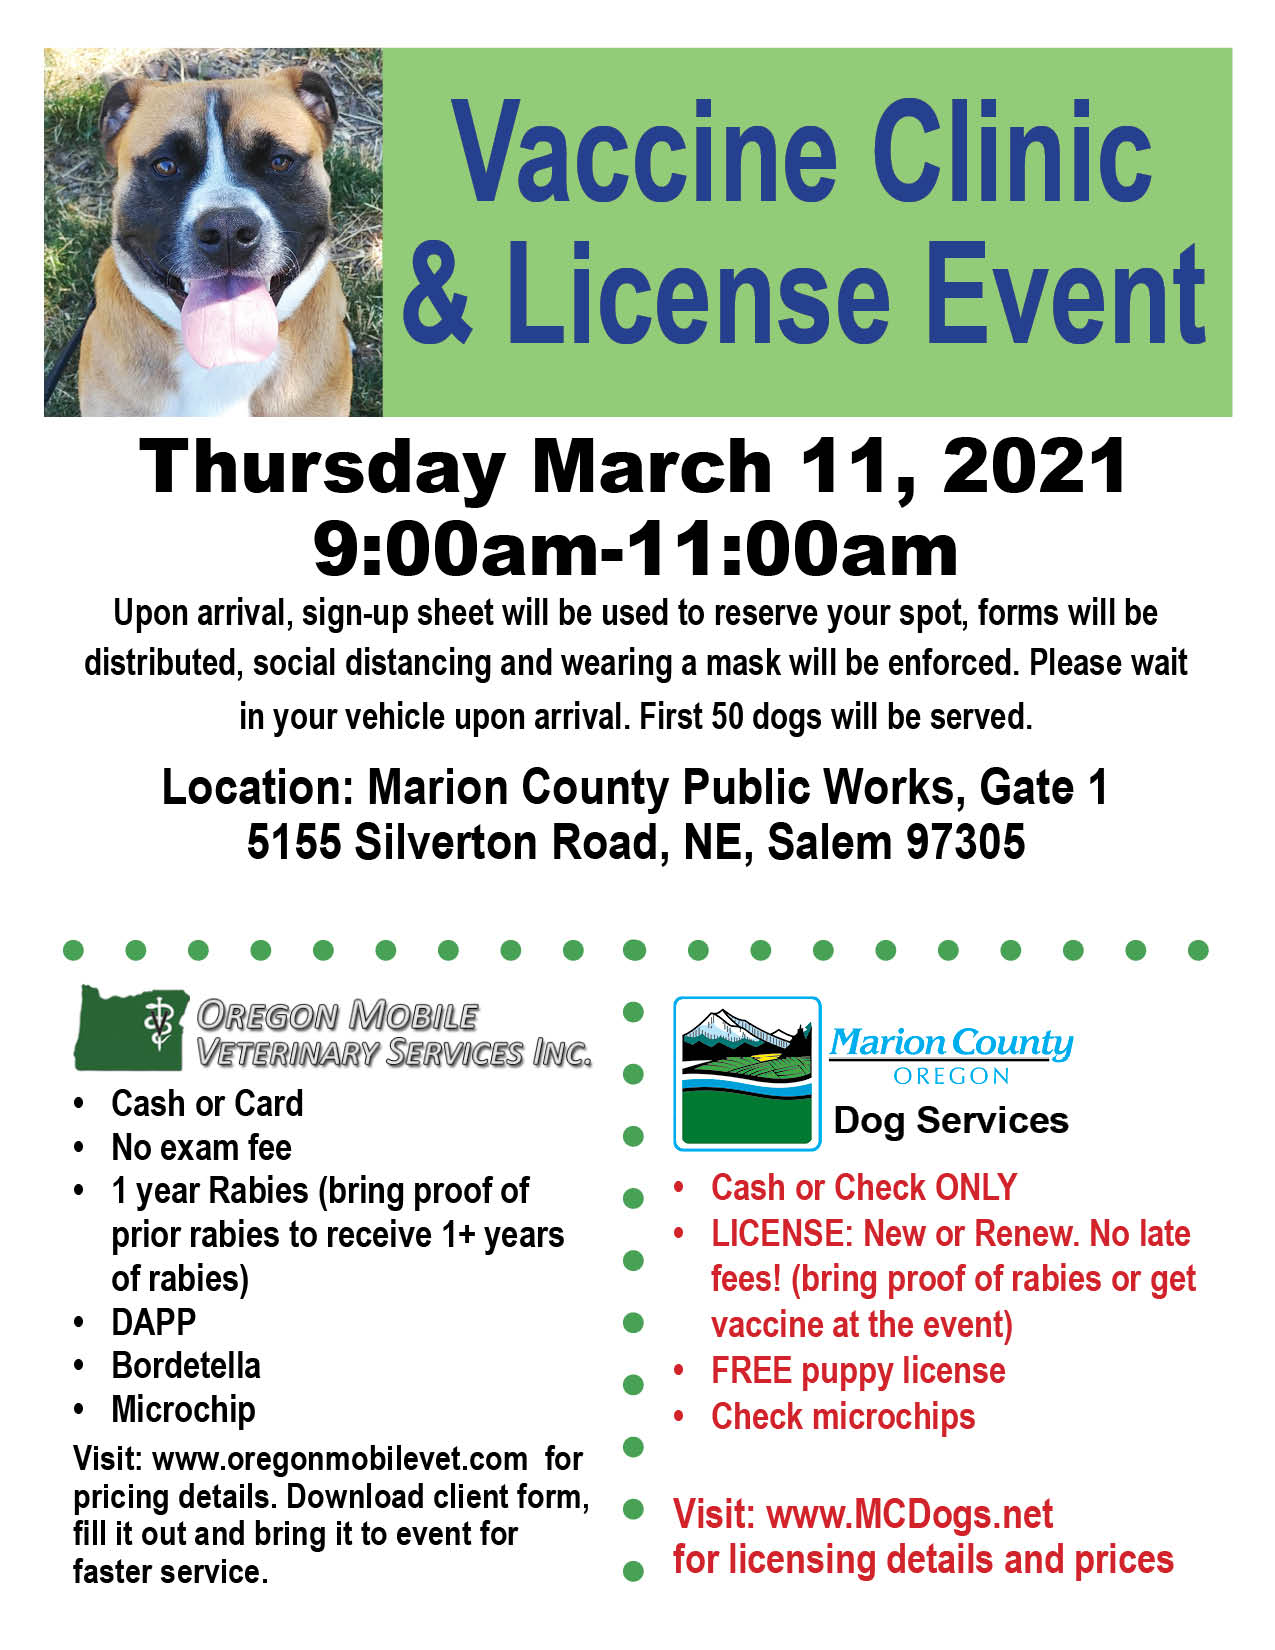 Low Cost Vaccine & No Late Fee Dog License Event